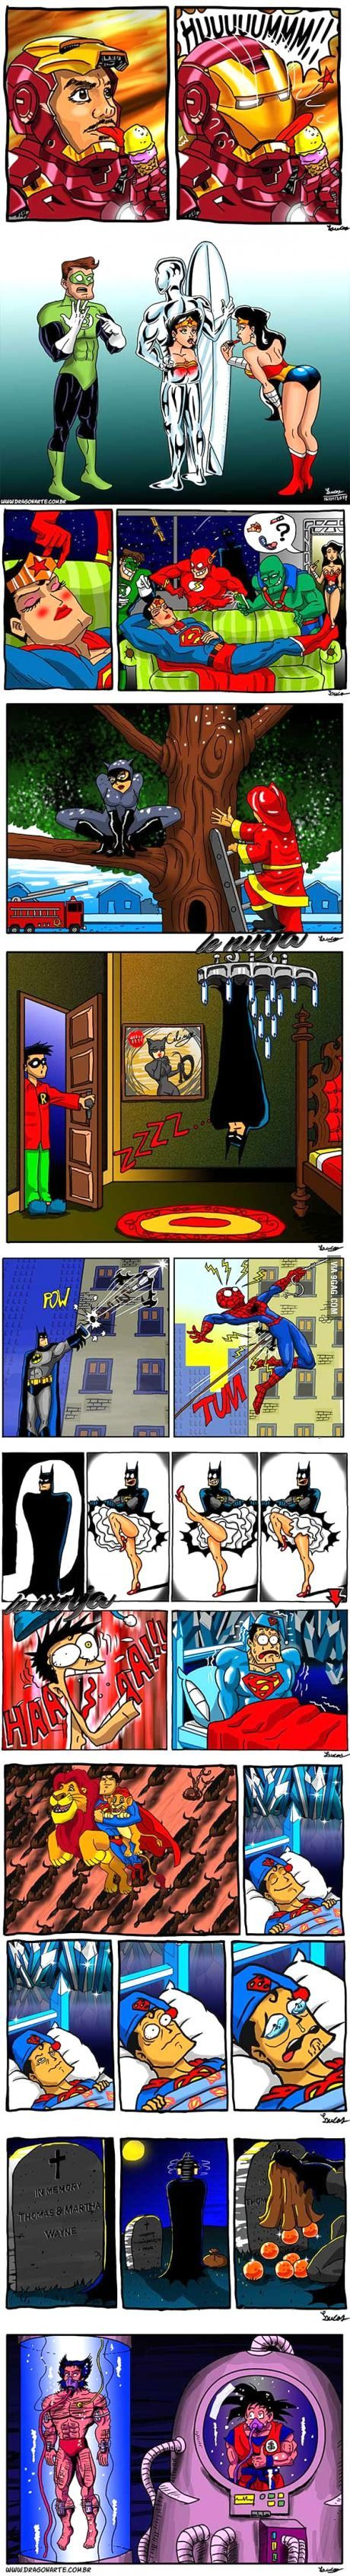 Super Heroes fun time - 9GAG